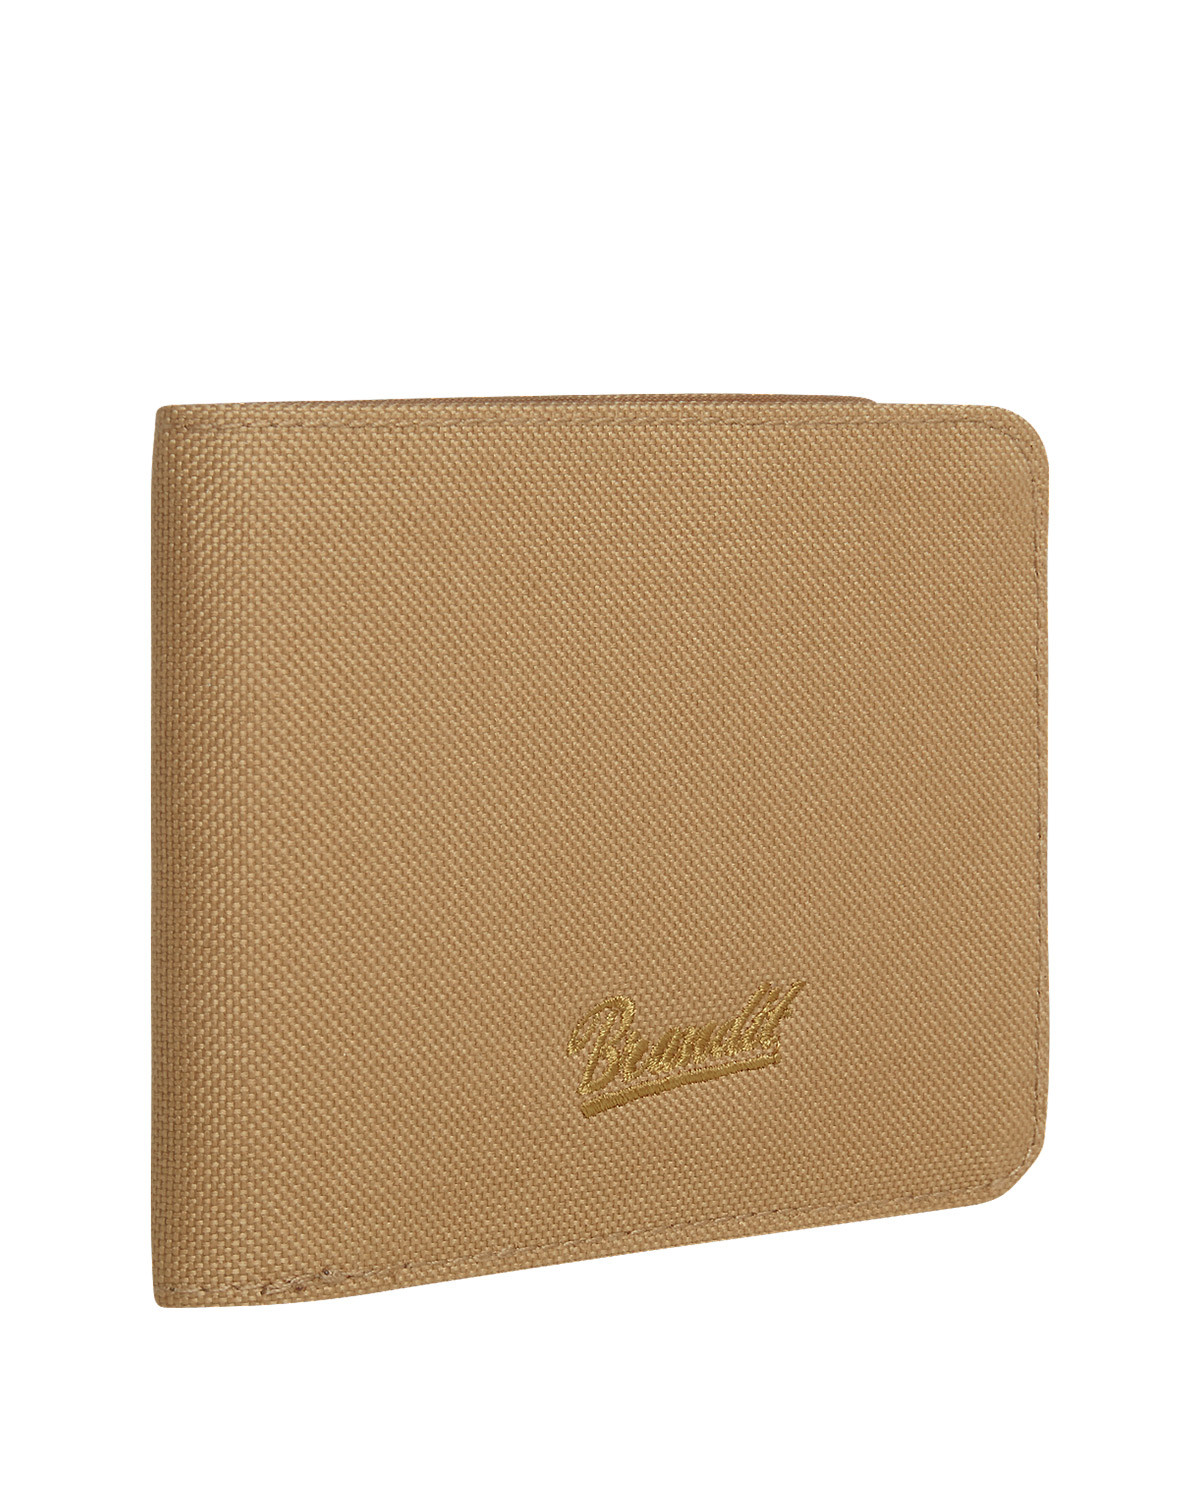 Image of   Brandit Wallet Four (Camel, One Size)